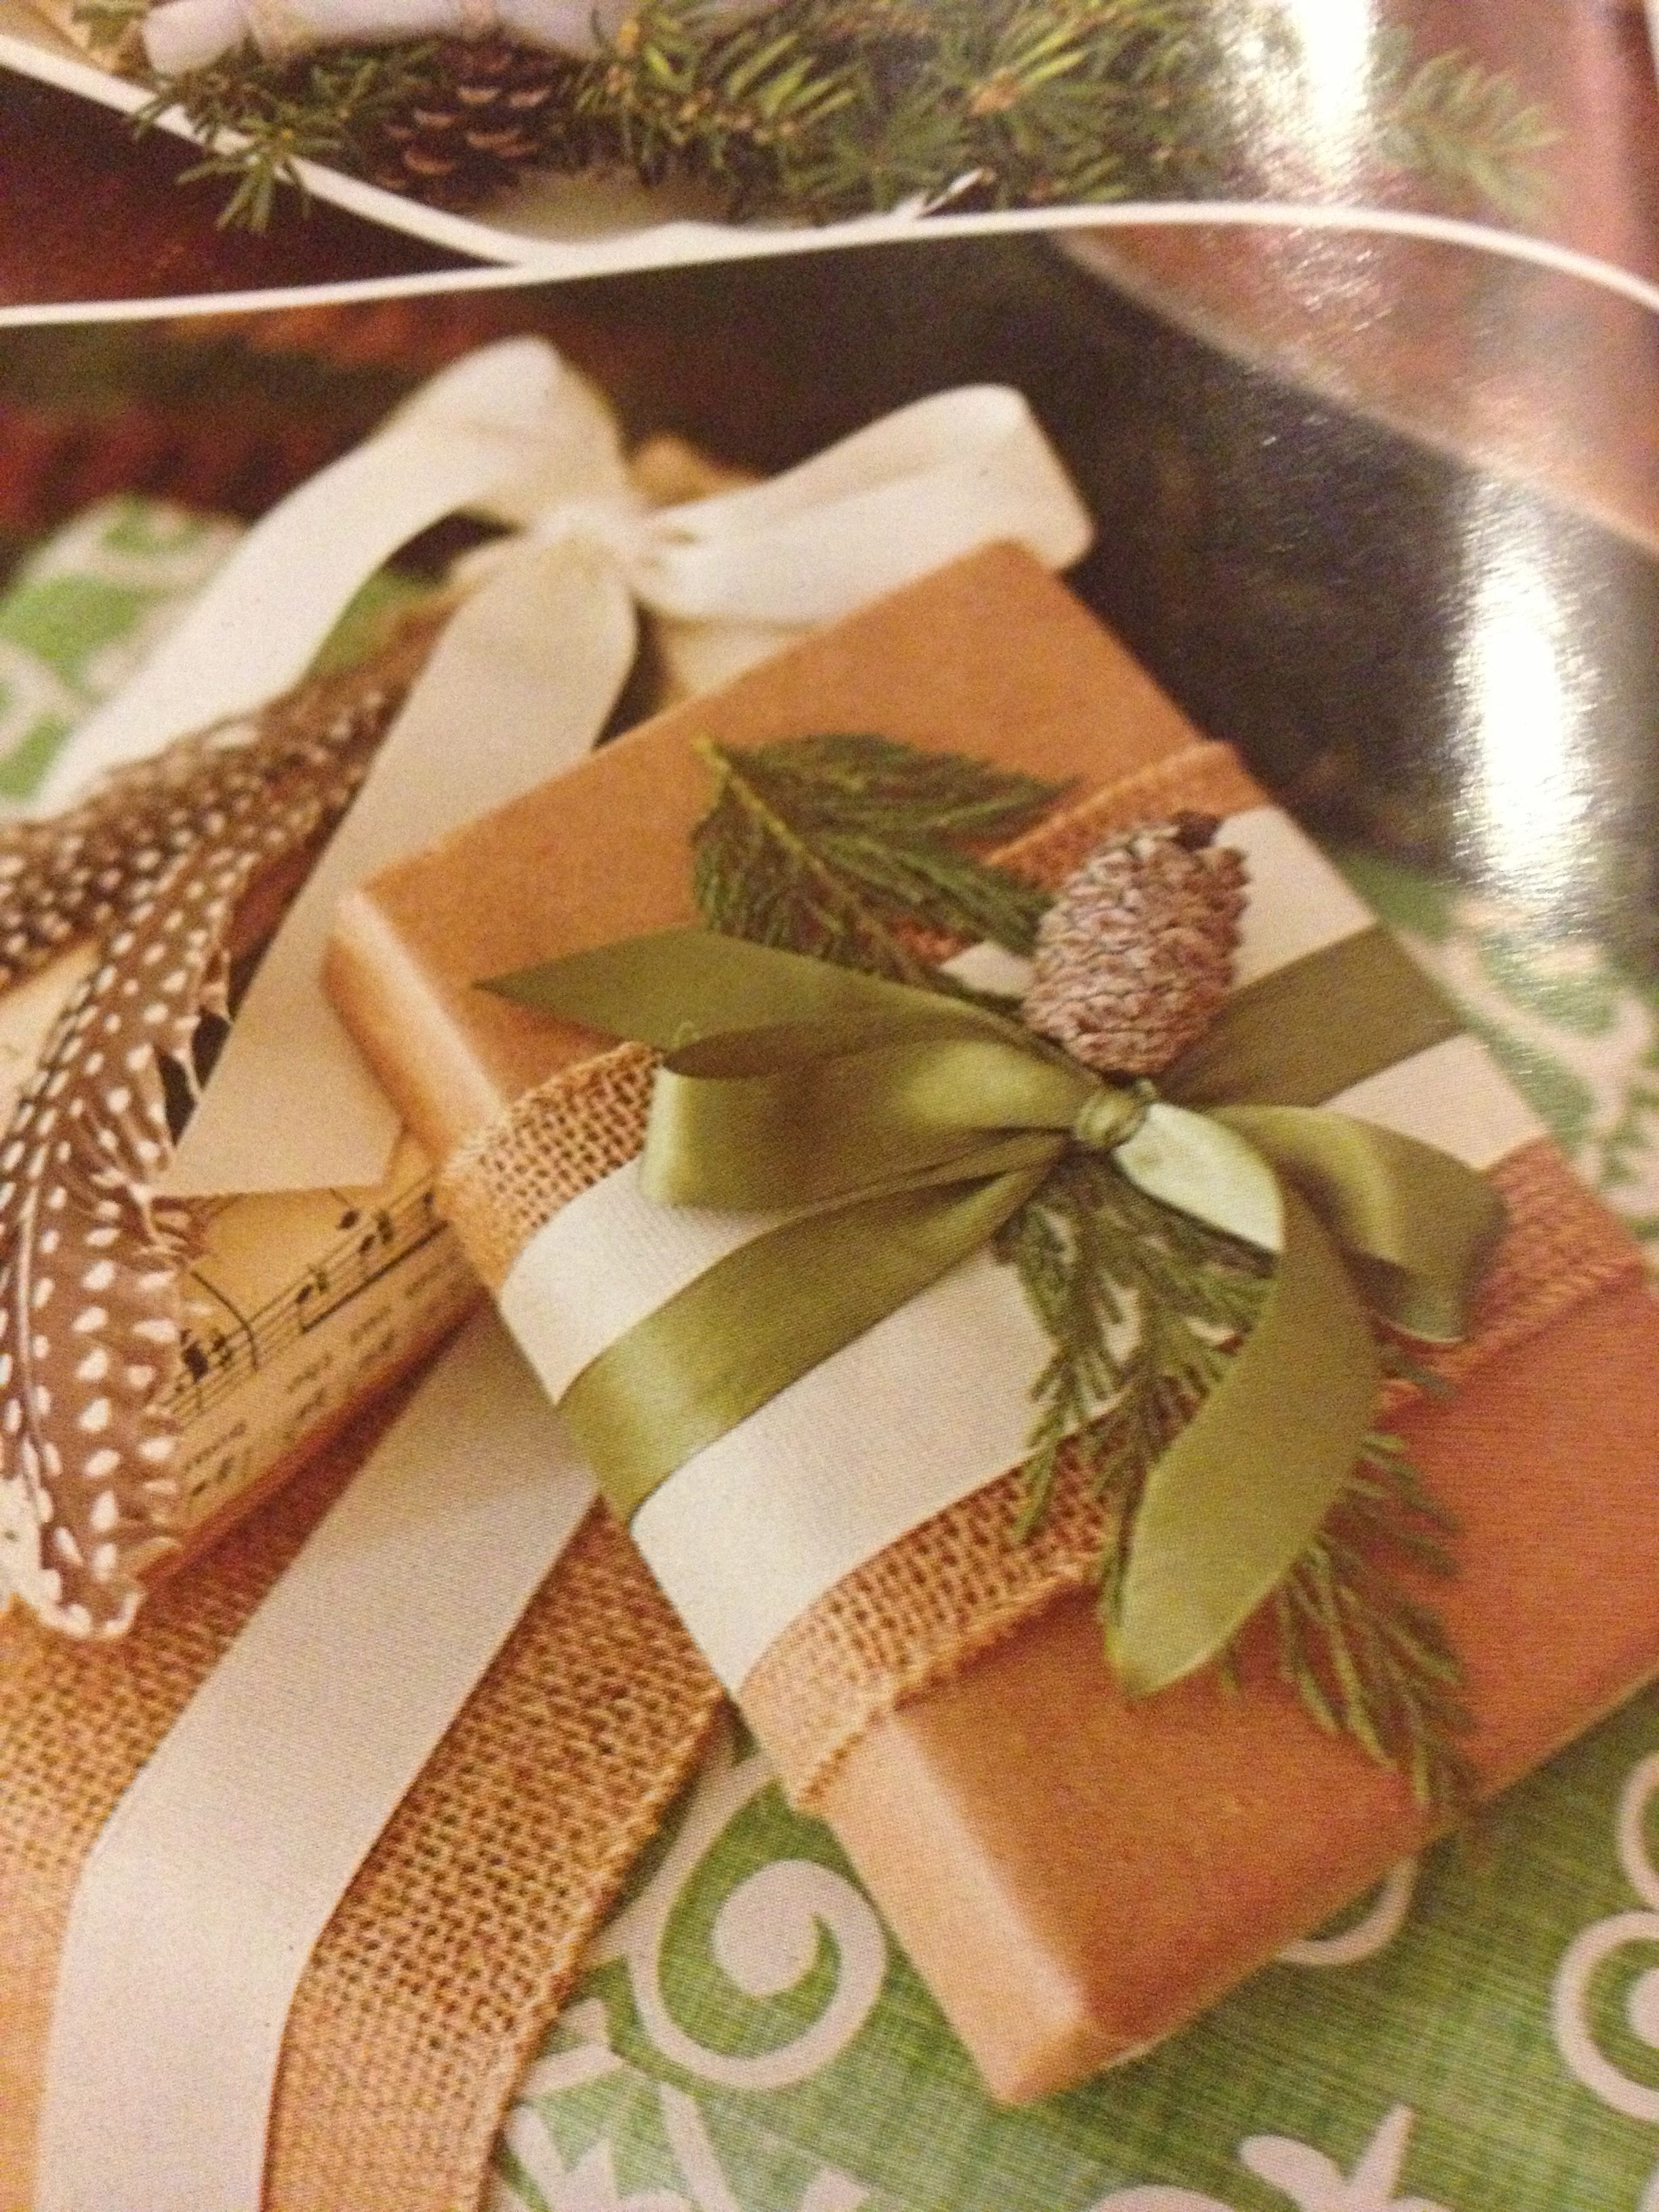 Wrapping idea natural materials, yet elegant